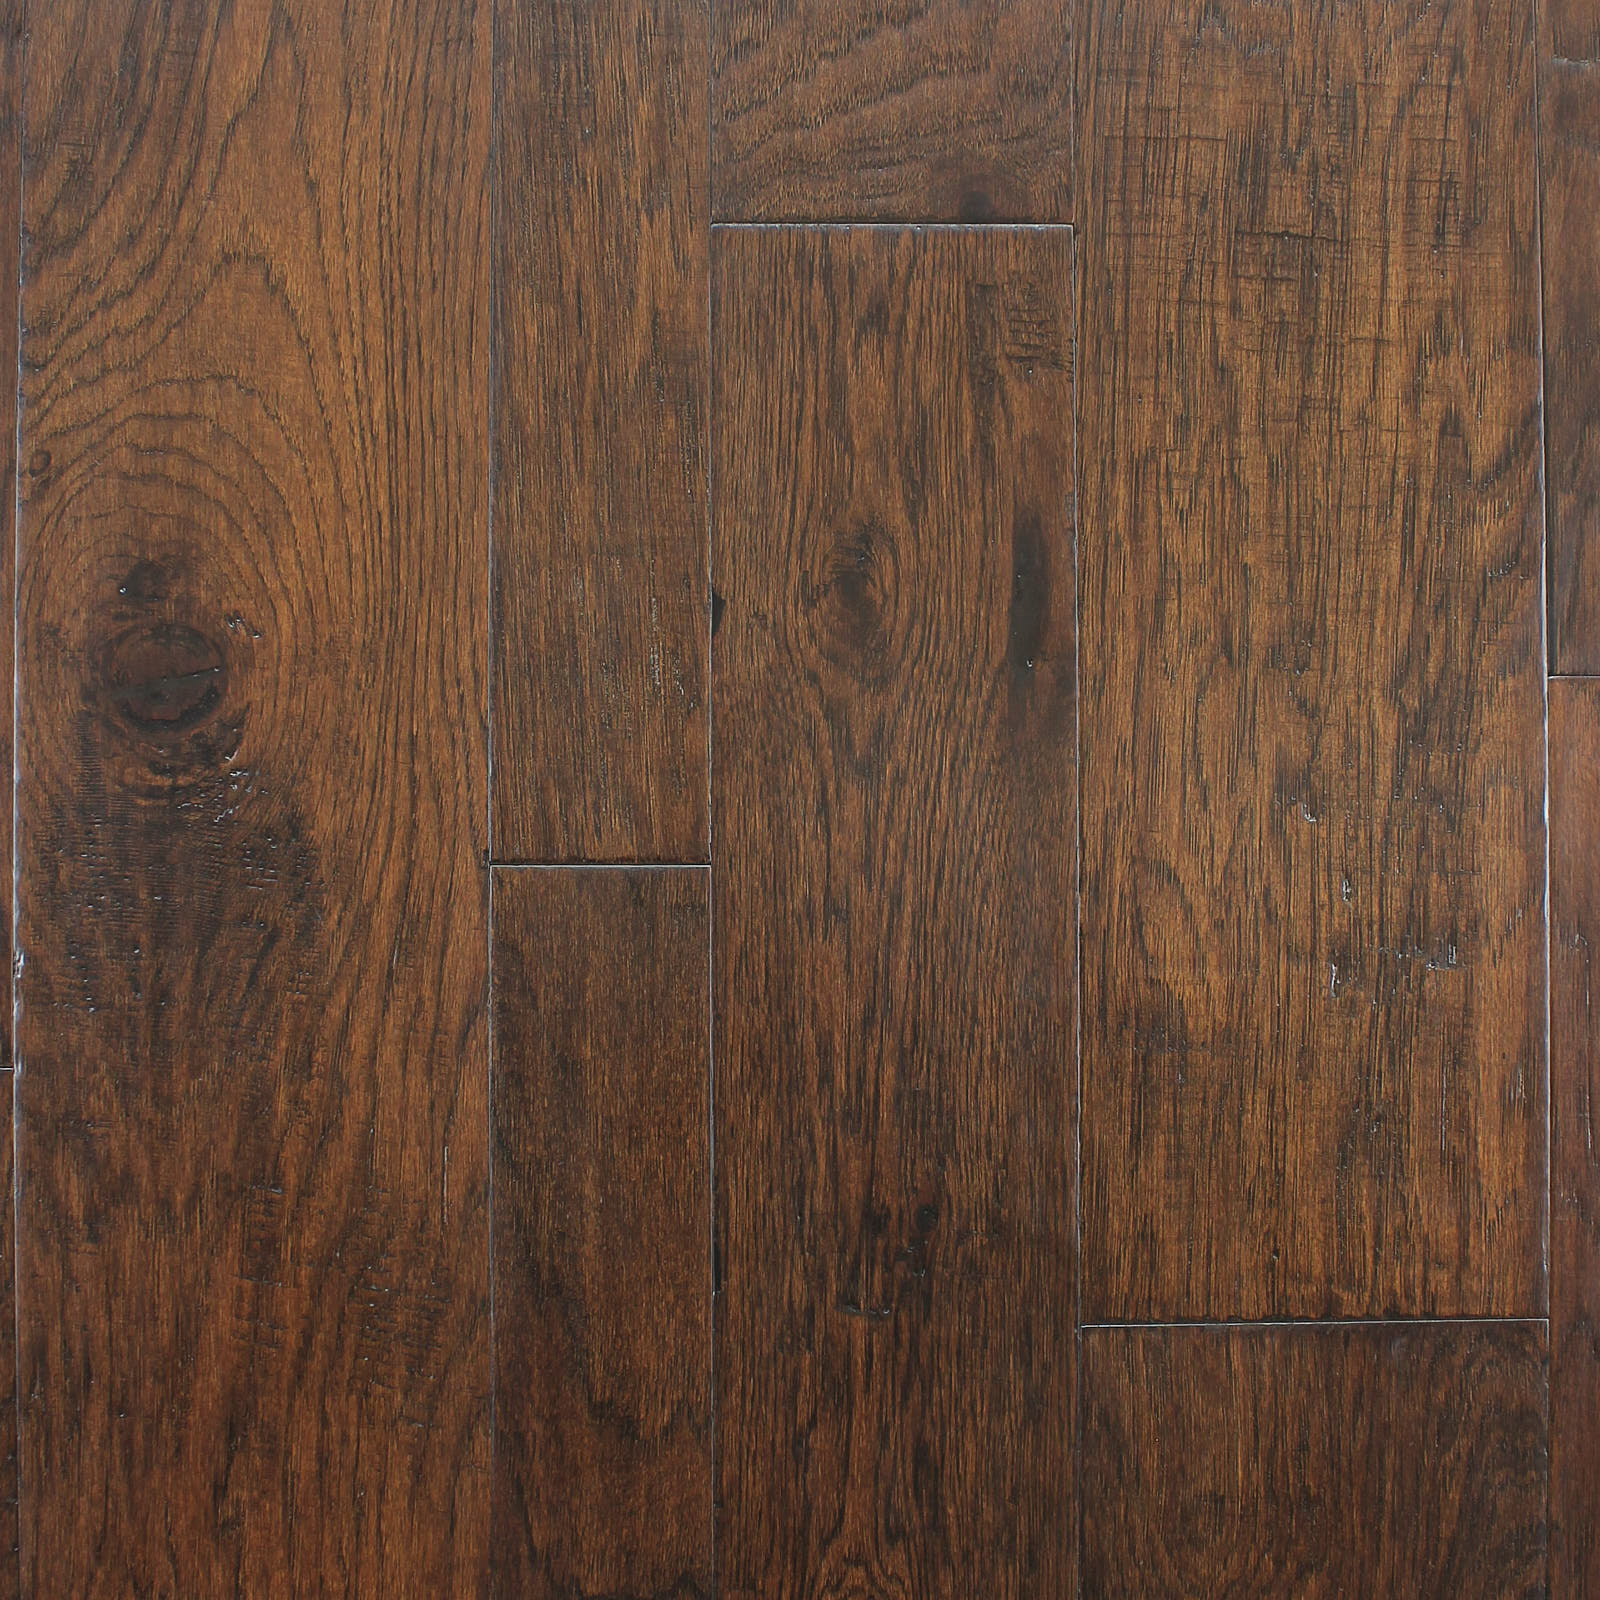 Firestorm Smokey Engineered Hardwood Flooring